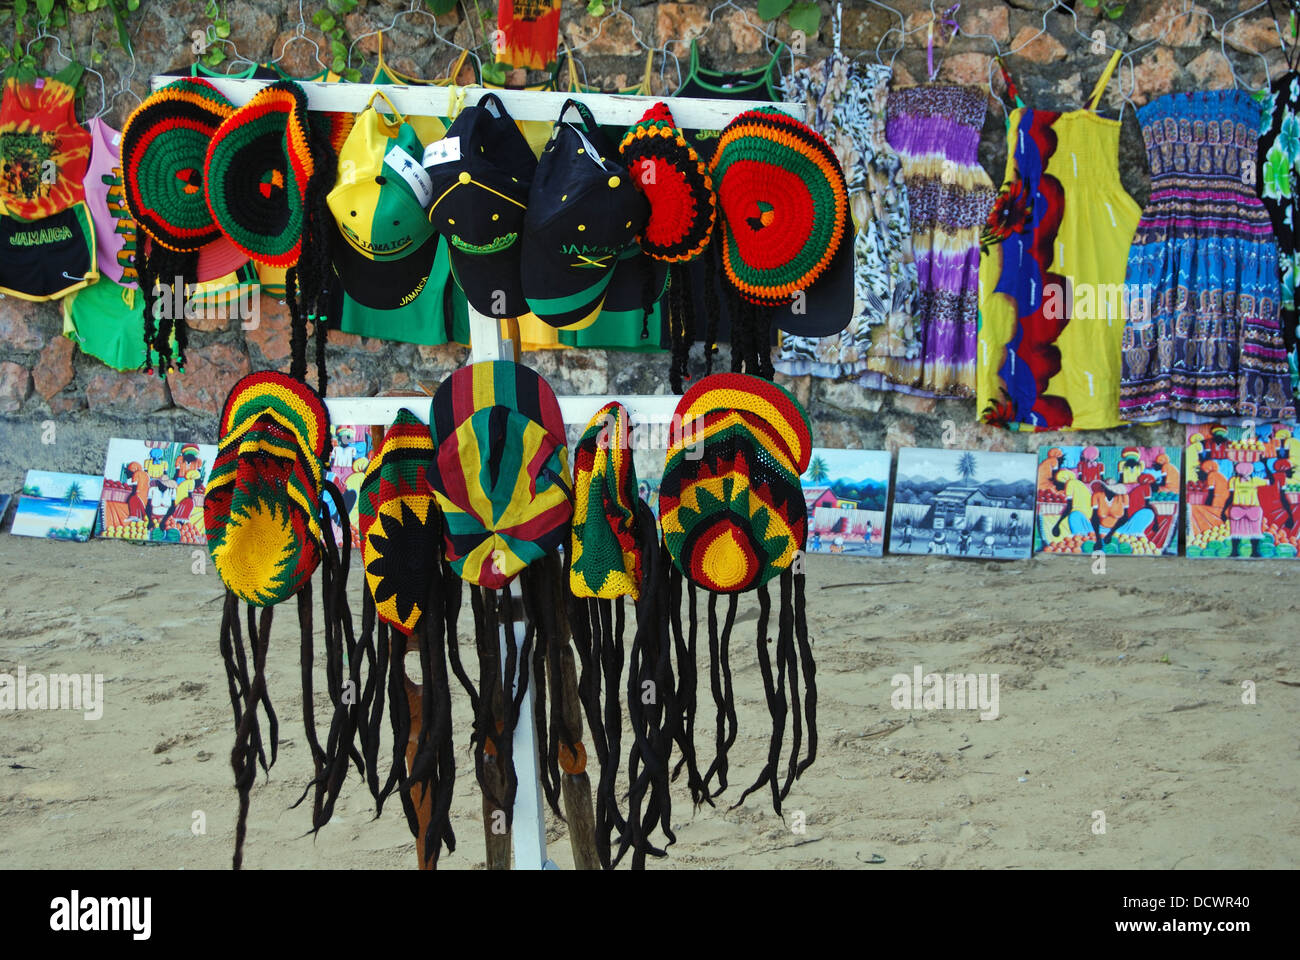 Novelty rasta hats and caps for sale on the beach, Ocho Rios, Middlesex County, Jamaica, Caribbean. - Stock Image